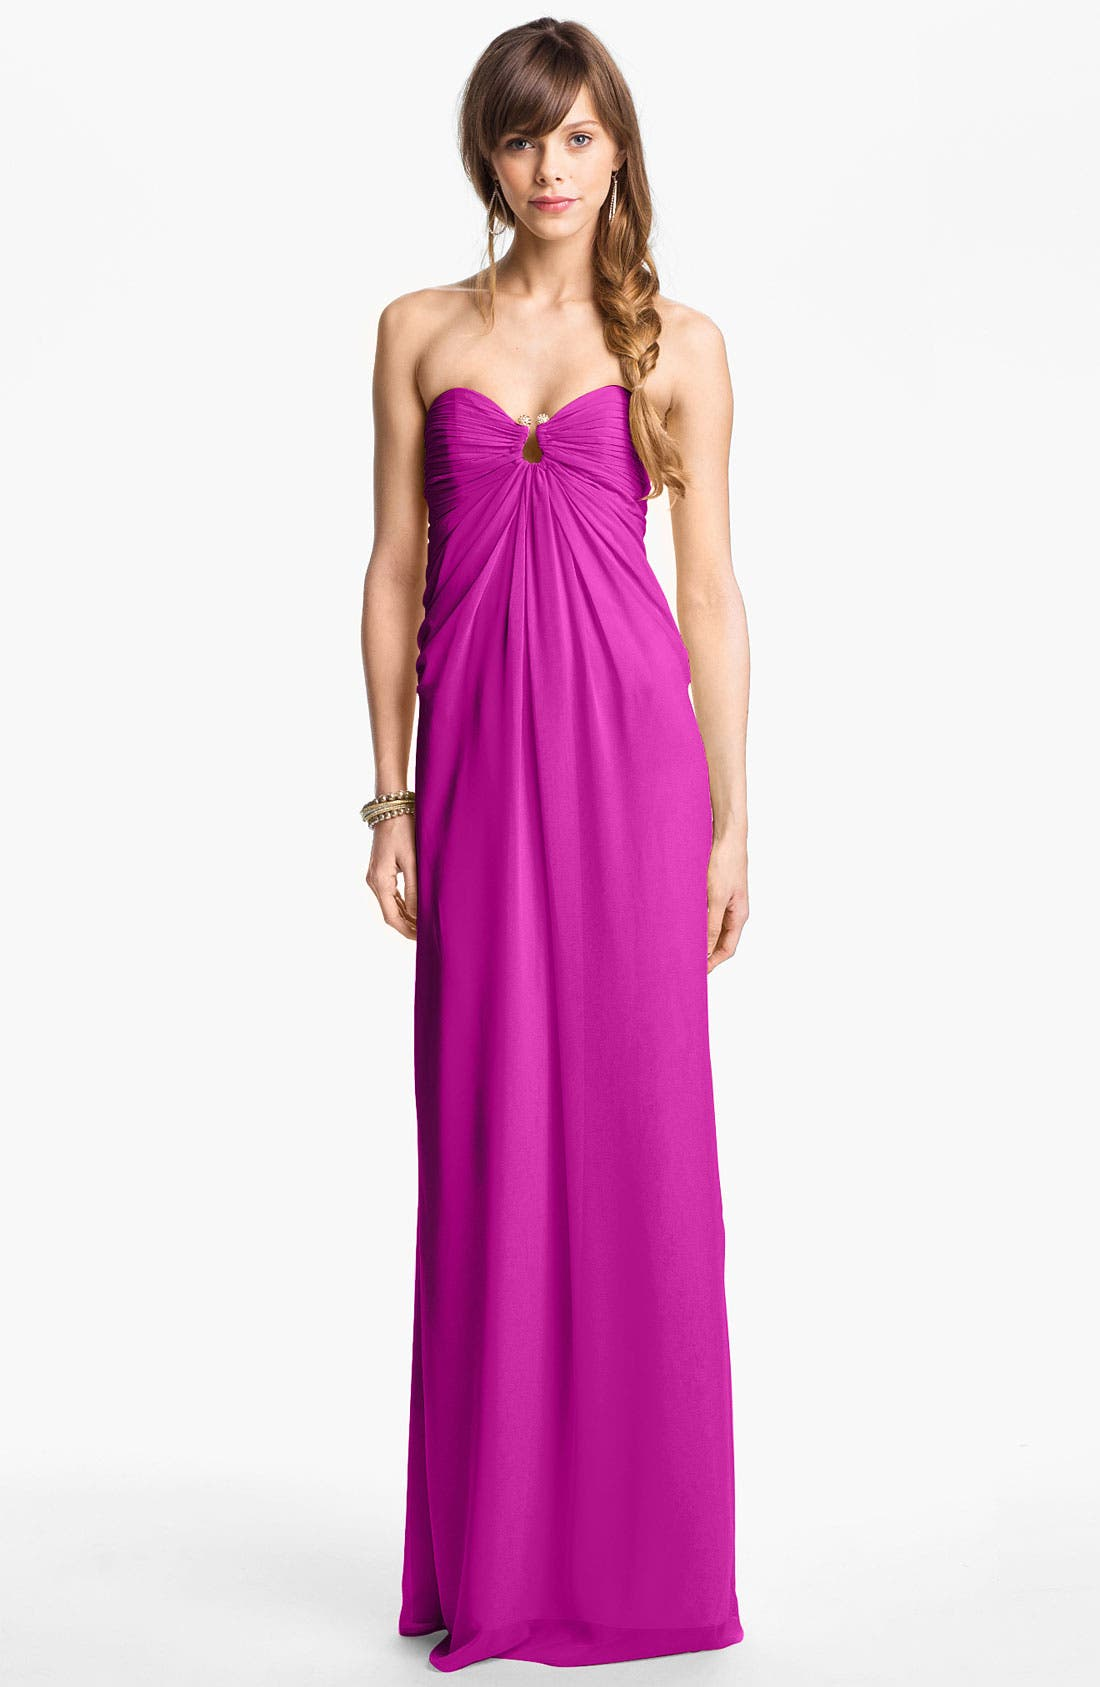 Alternate Image 1 Selected - Laundry by Shelli Segal Strapless Chiffon Gown